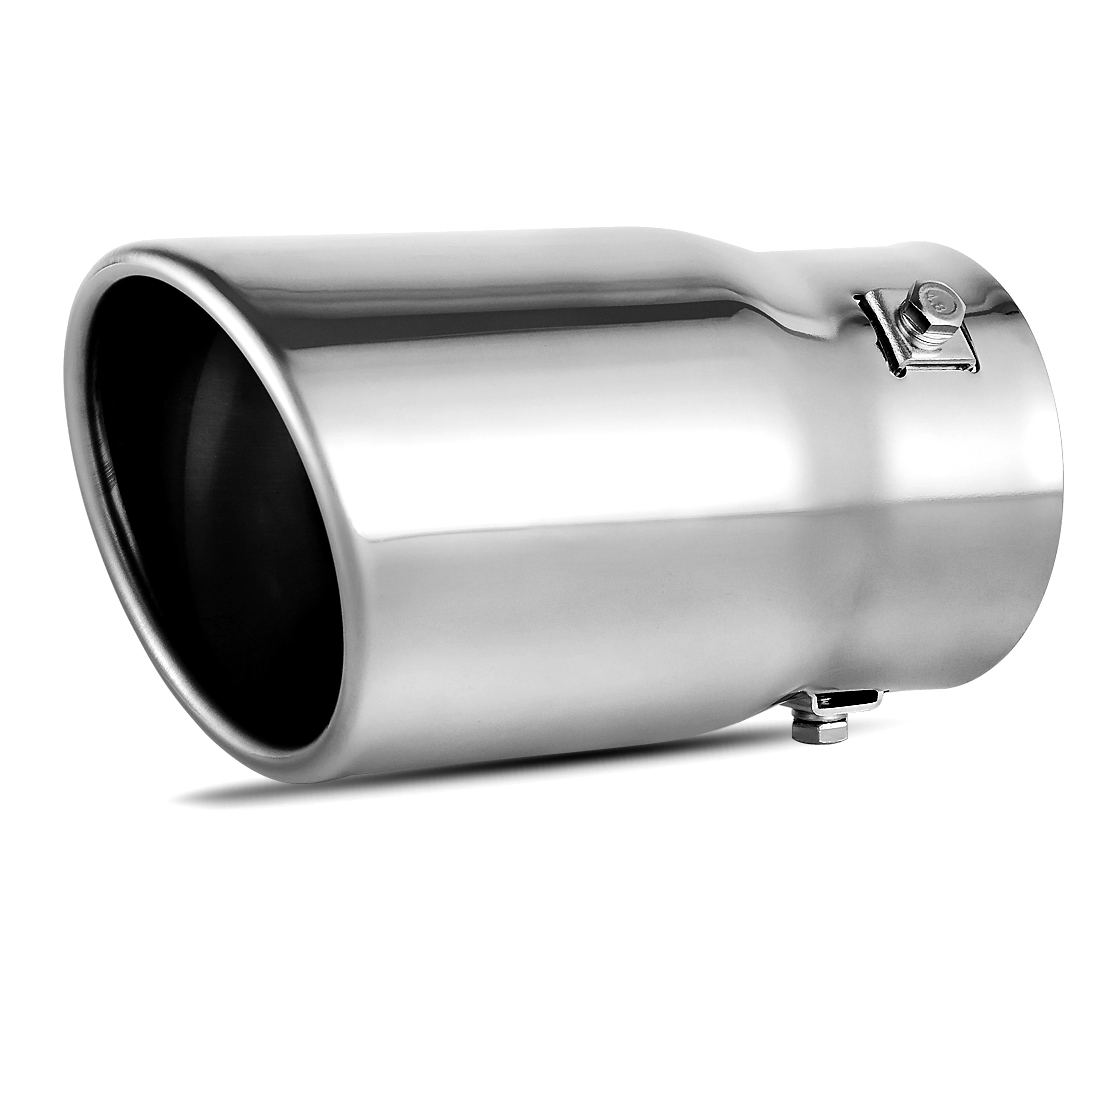 exhaust tip 2 3 inch inlet x 3 5 inch outlet x 6 inch long chrome polished stainless steel angle cut pipe rolled end tailpipe walmart com